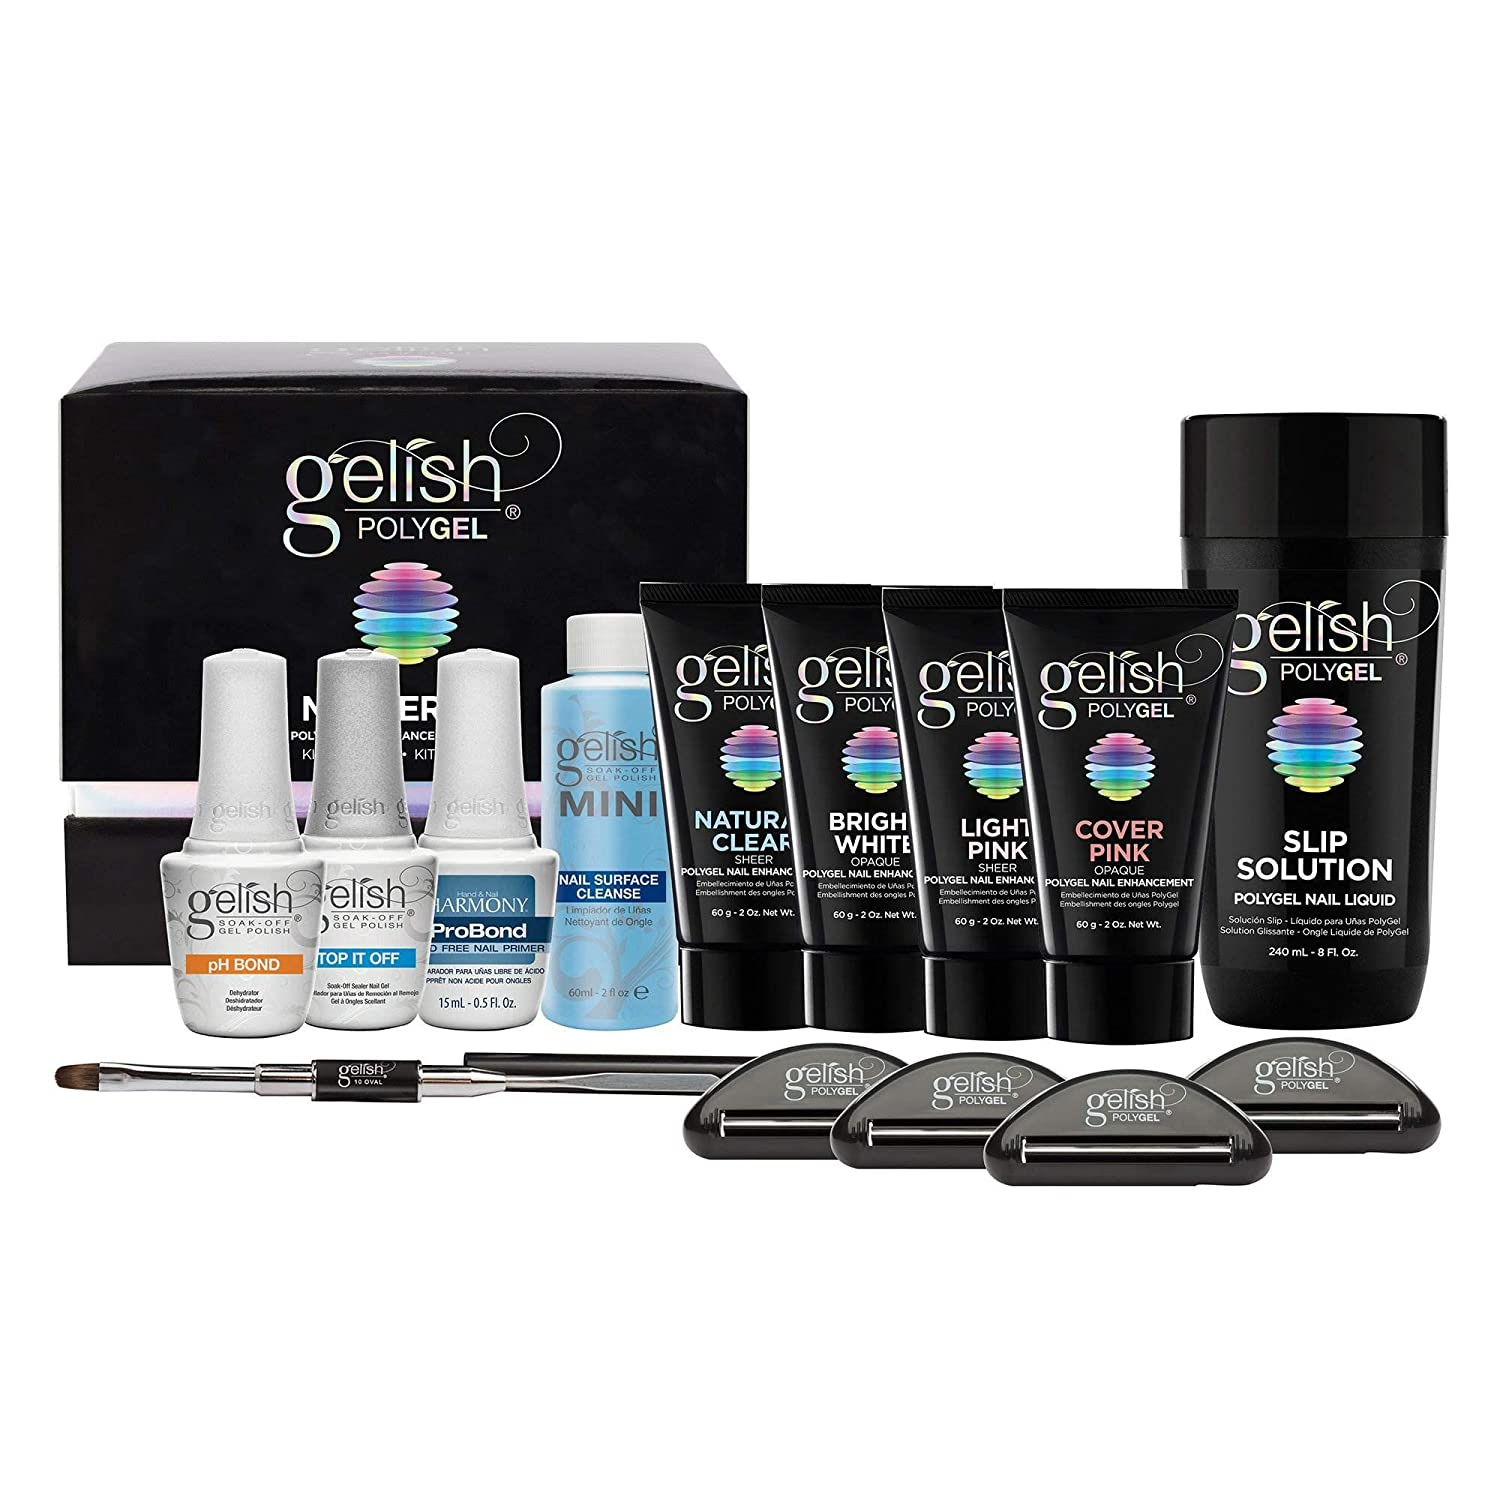 Gelish Polygel Master Kit Review